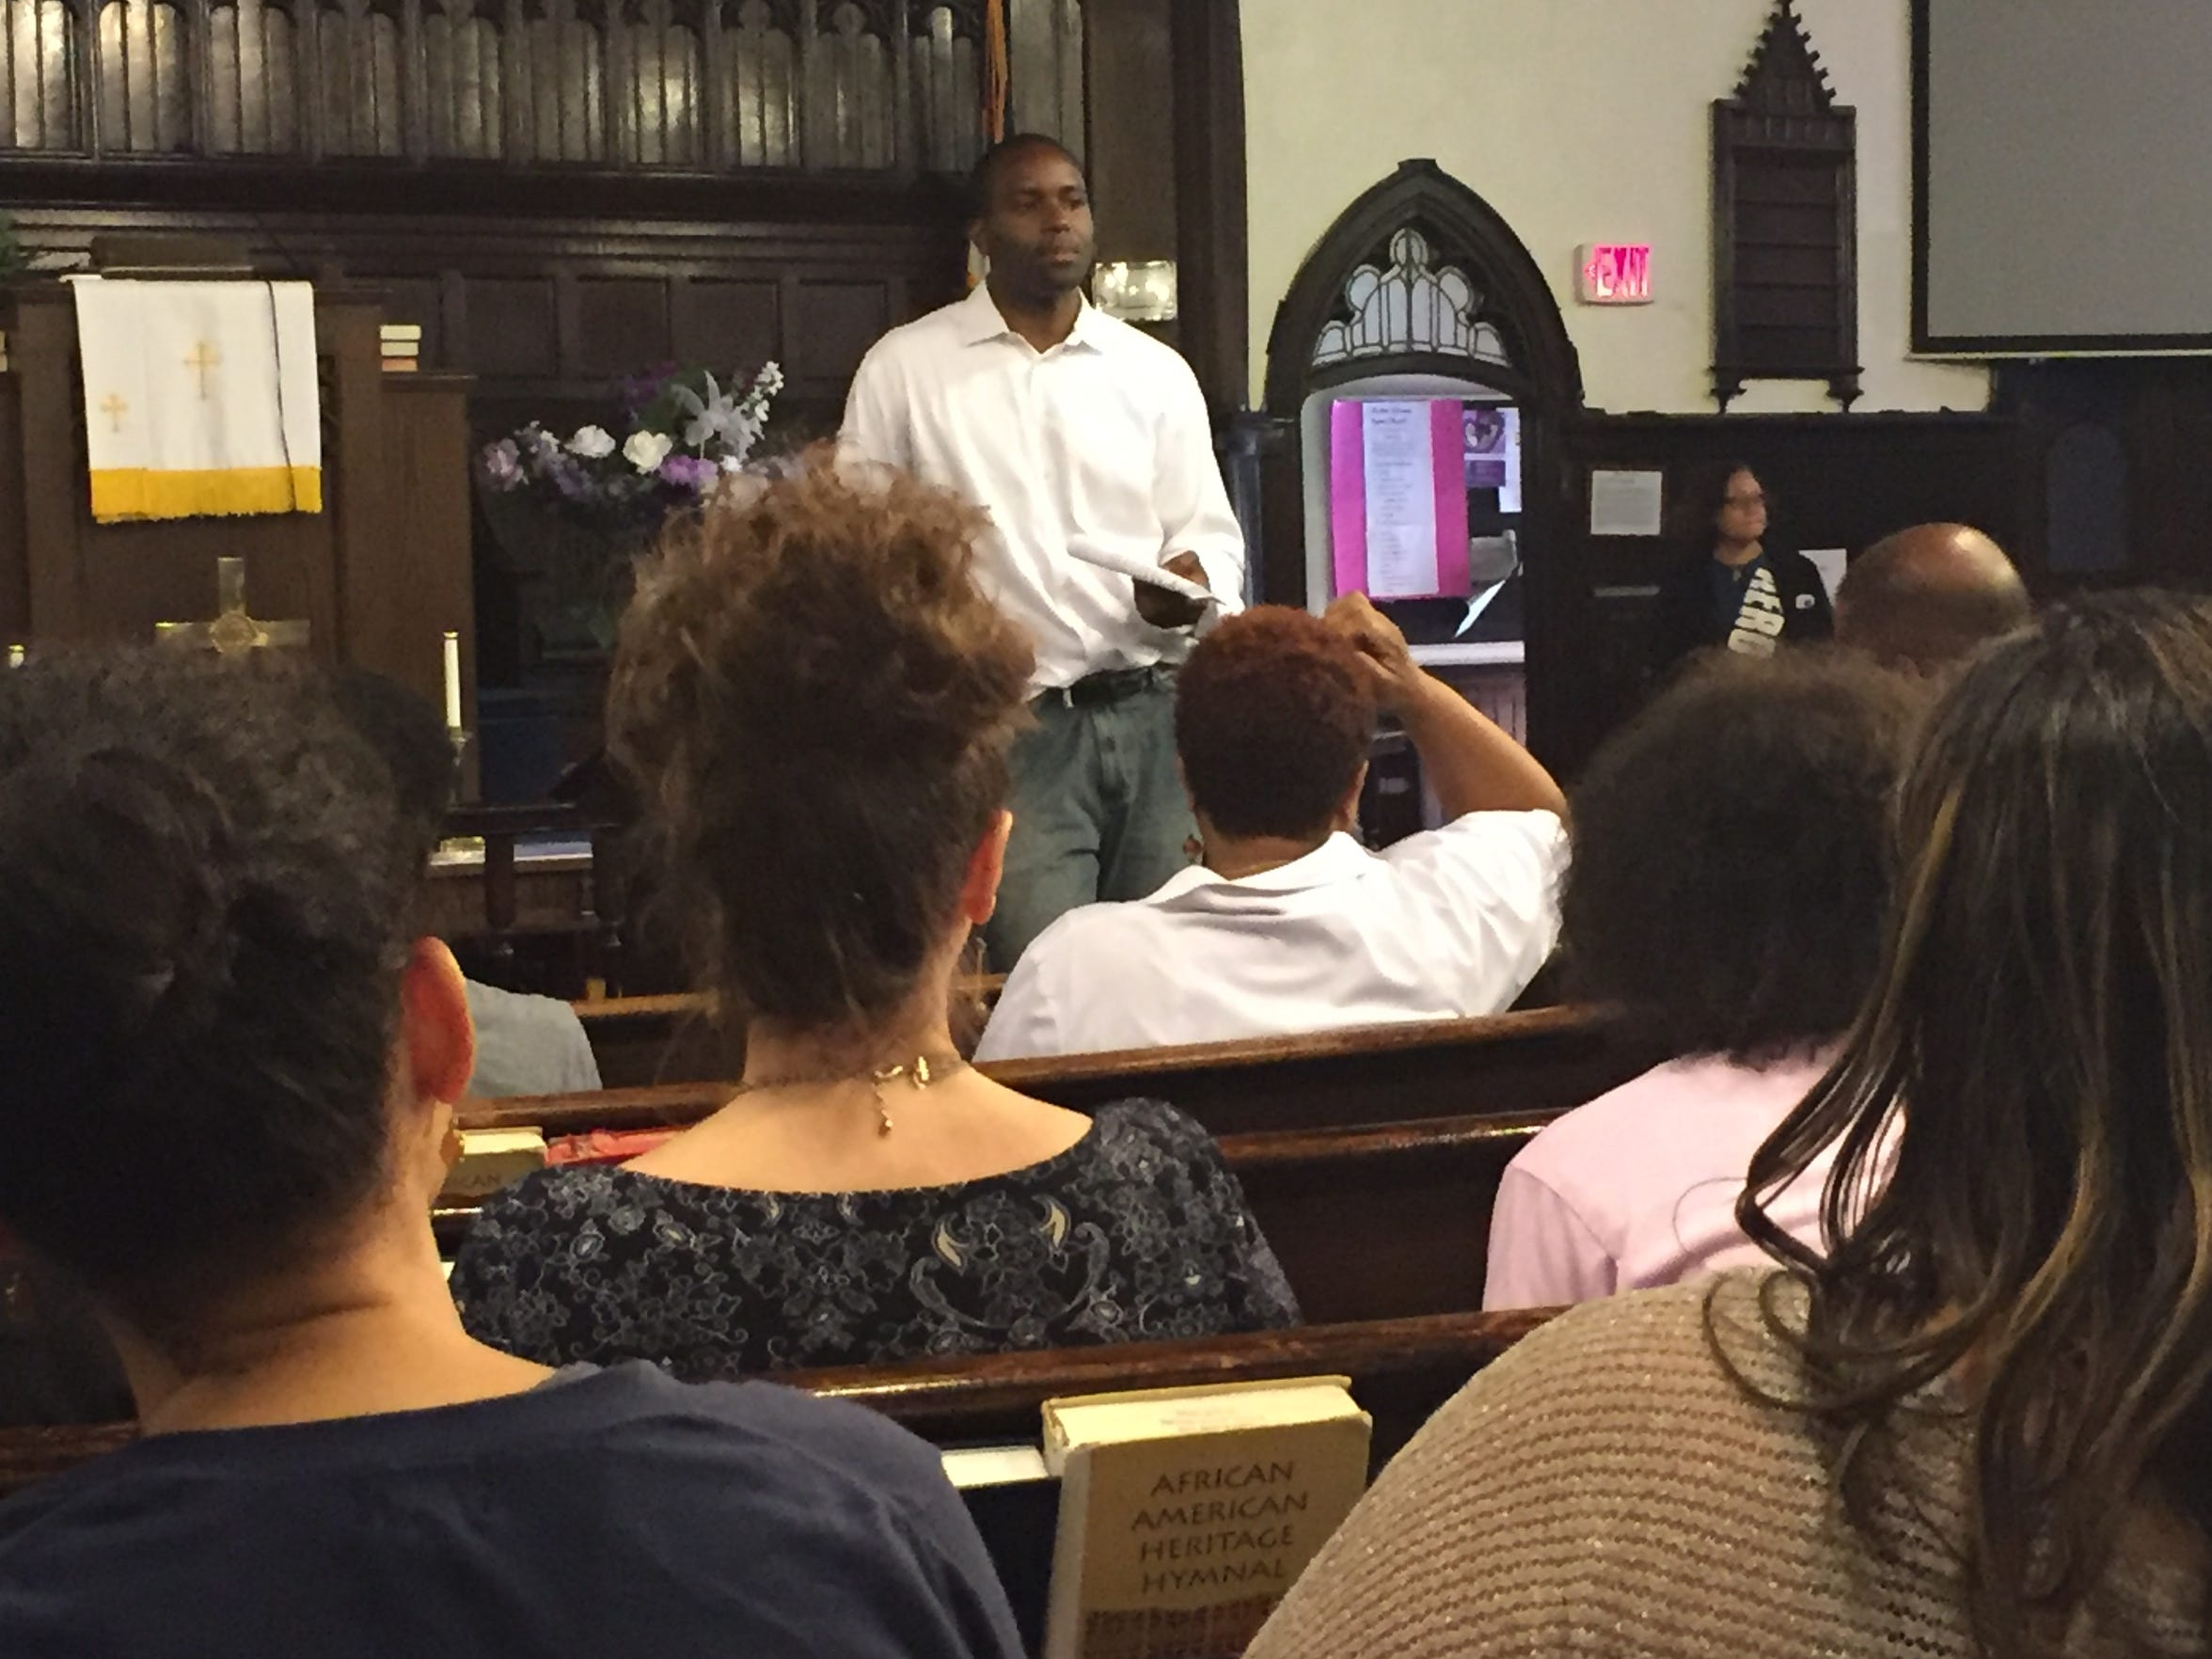 Eugene Young leads a forum at the Mother Africa Union Church on how to keep young teens off the streets and out of trouble with the law.